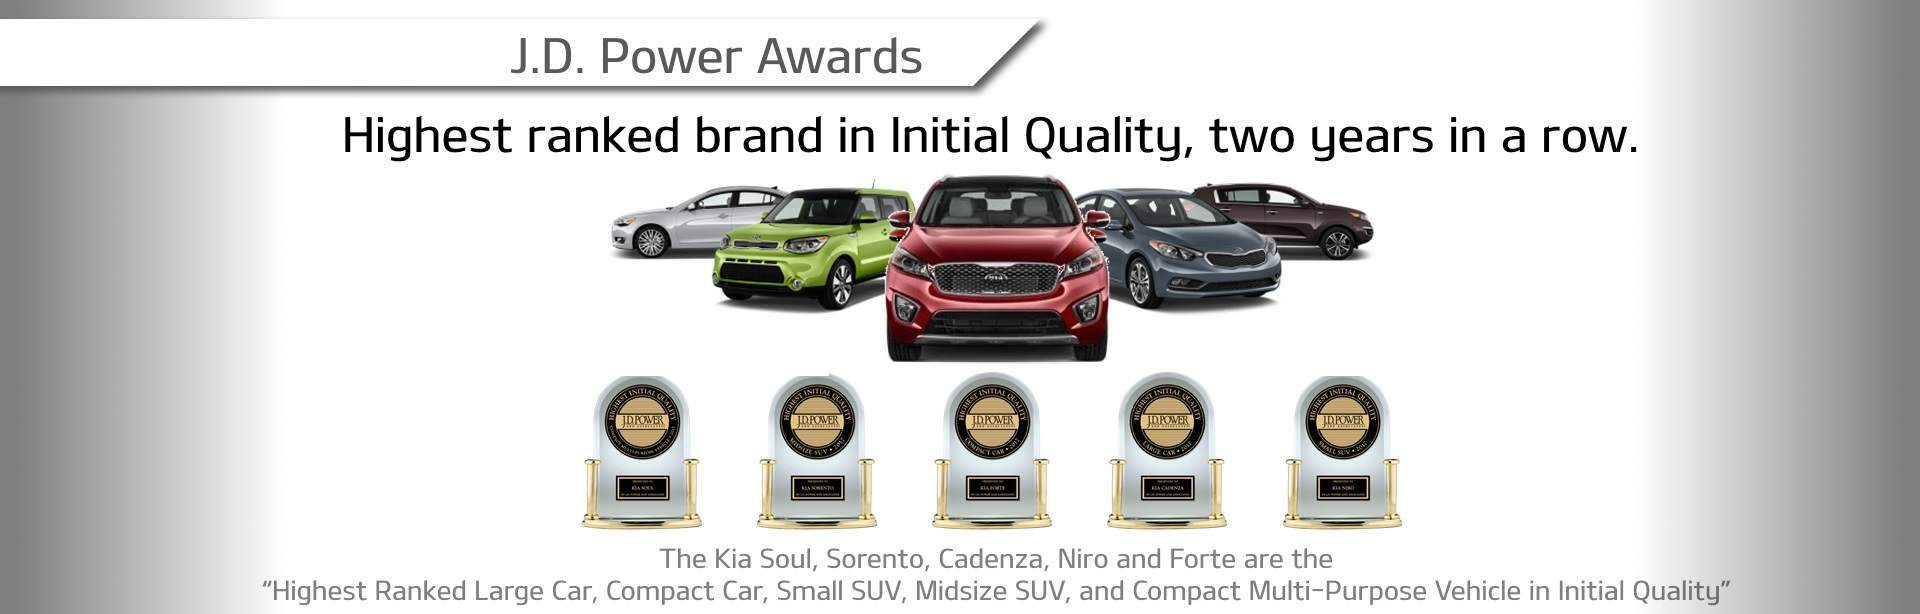 J.D. Power Awards